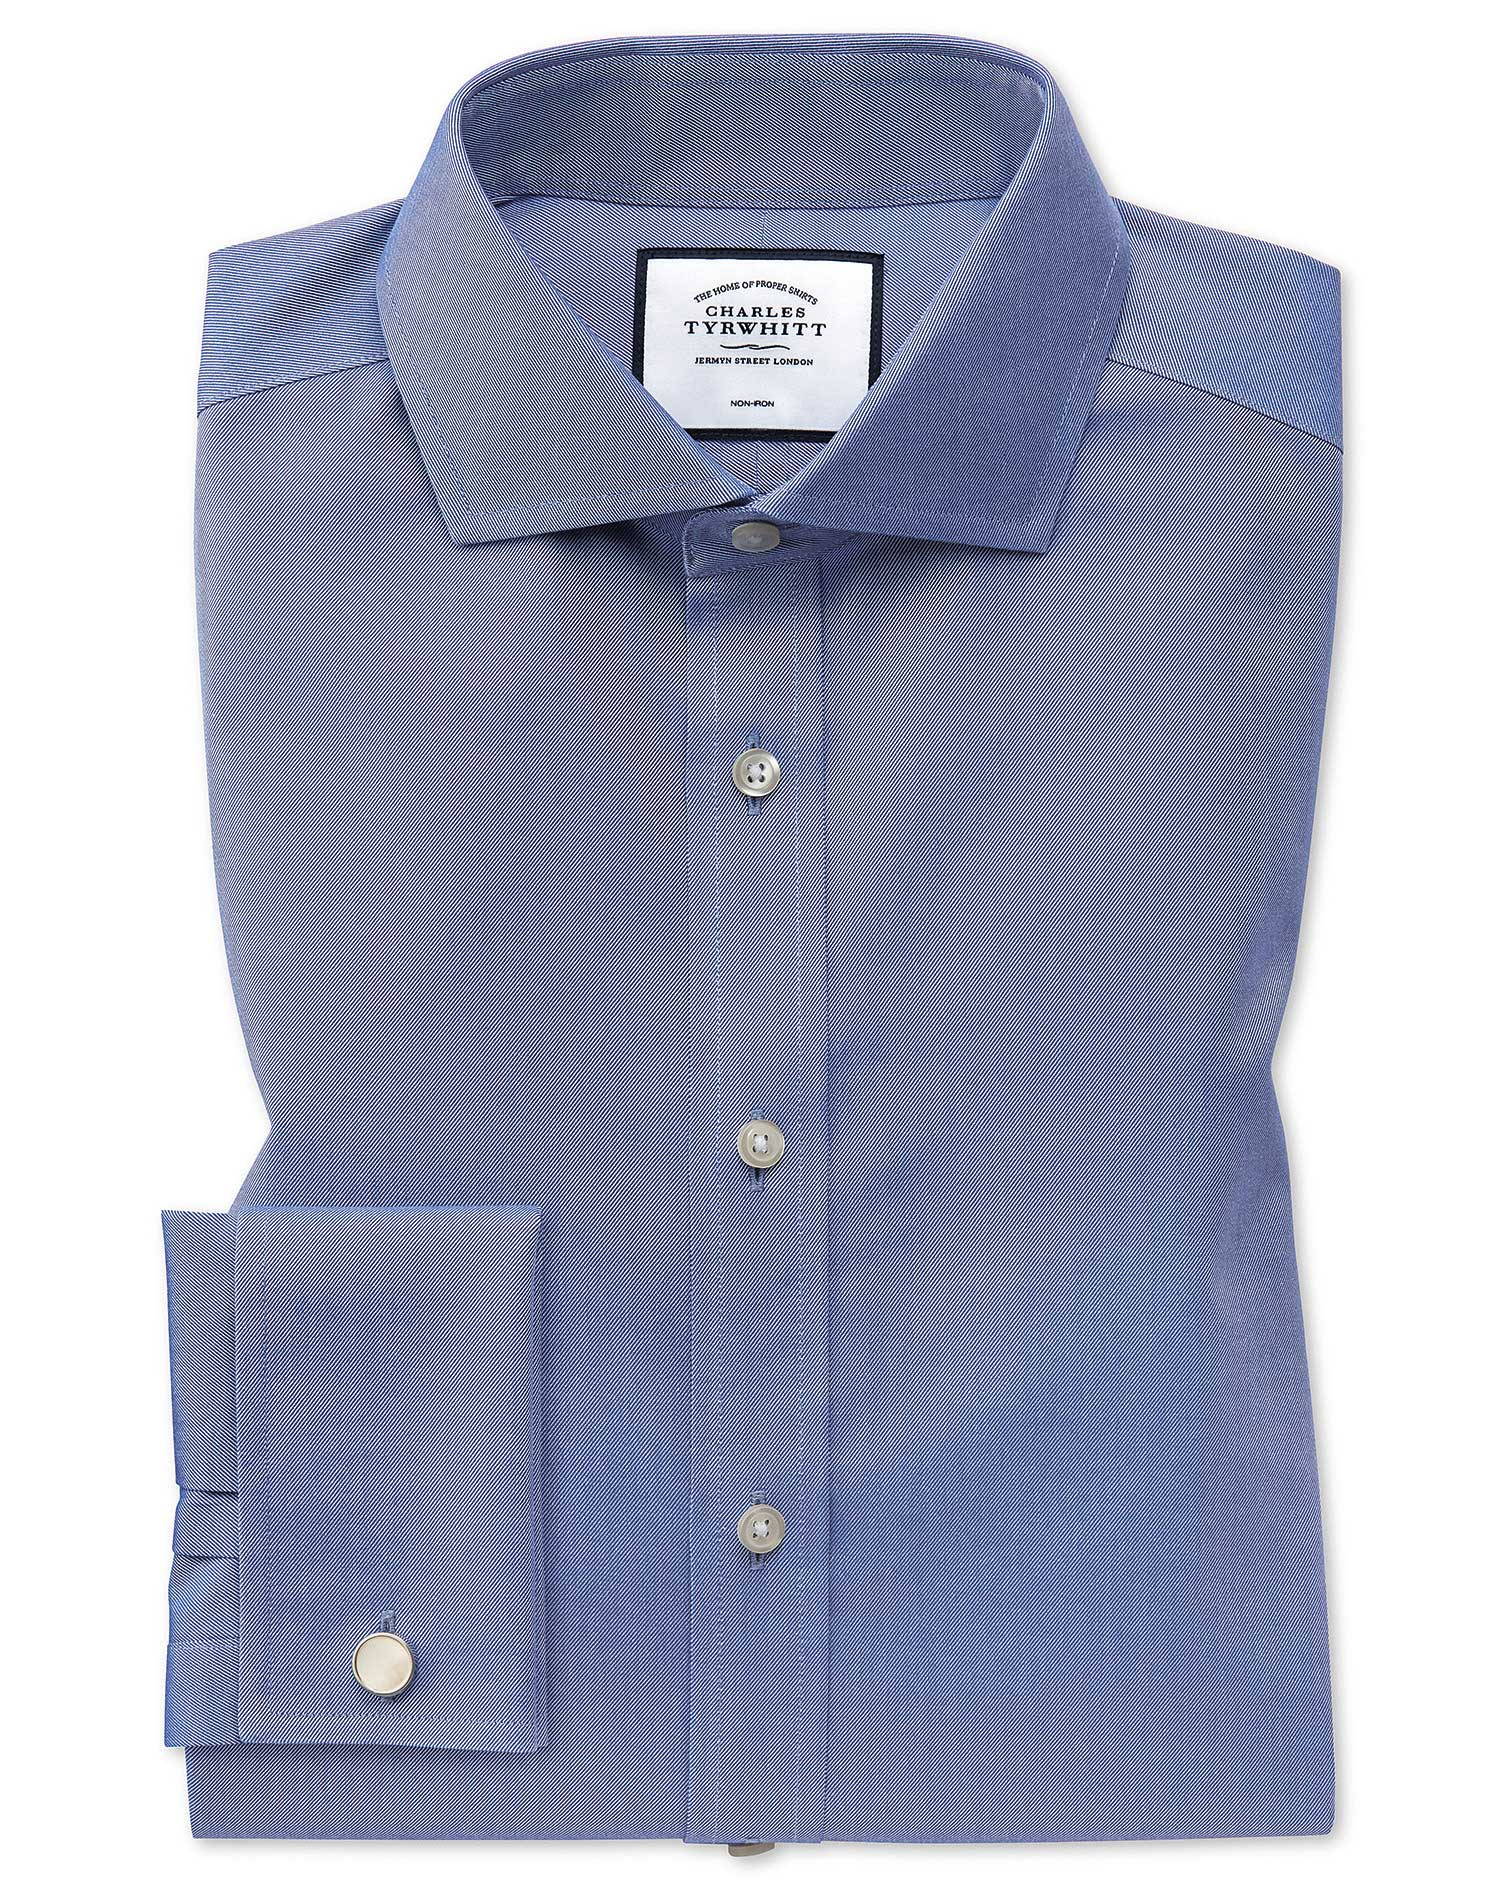 Extra Slim Fit Cutaway Non-Iron Twill Mid Blue Cotton Formal Shirt Single Cuff Size 17.5/35 by Charl